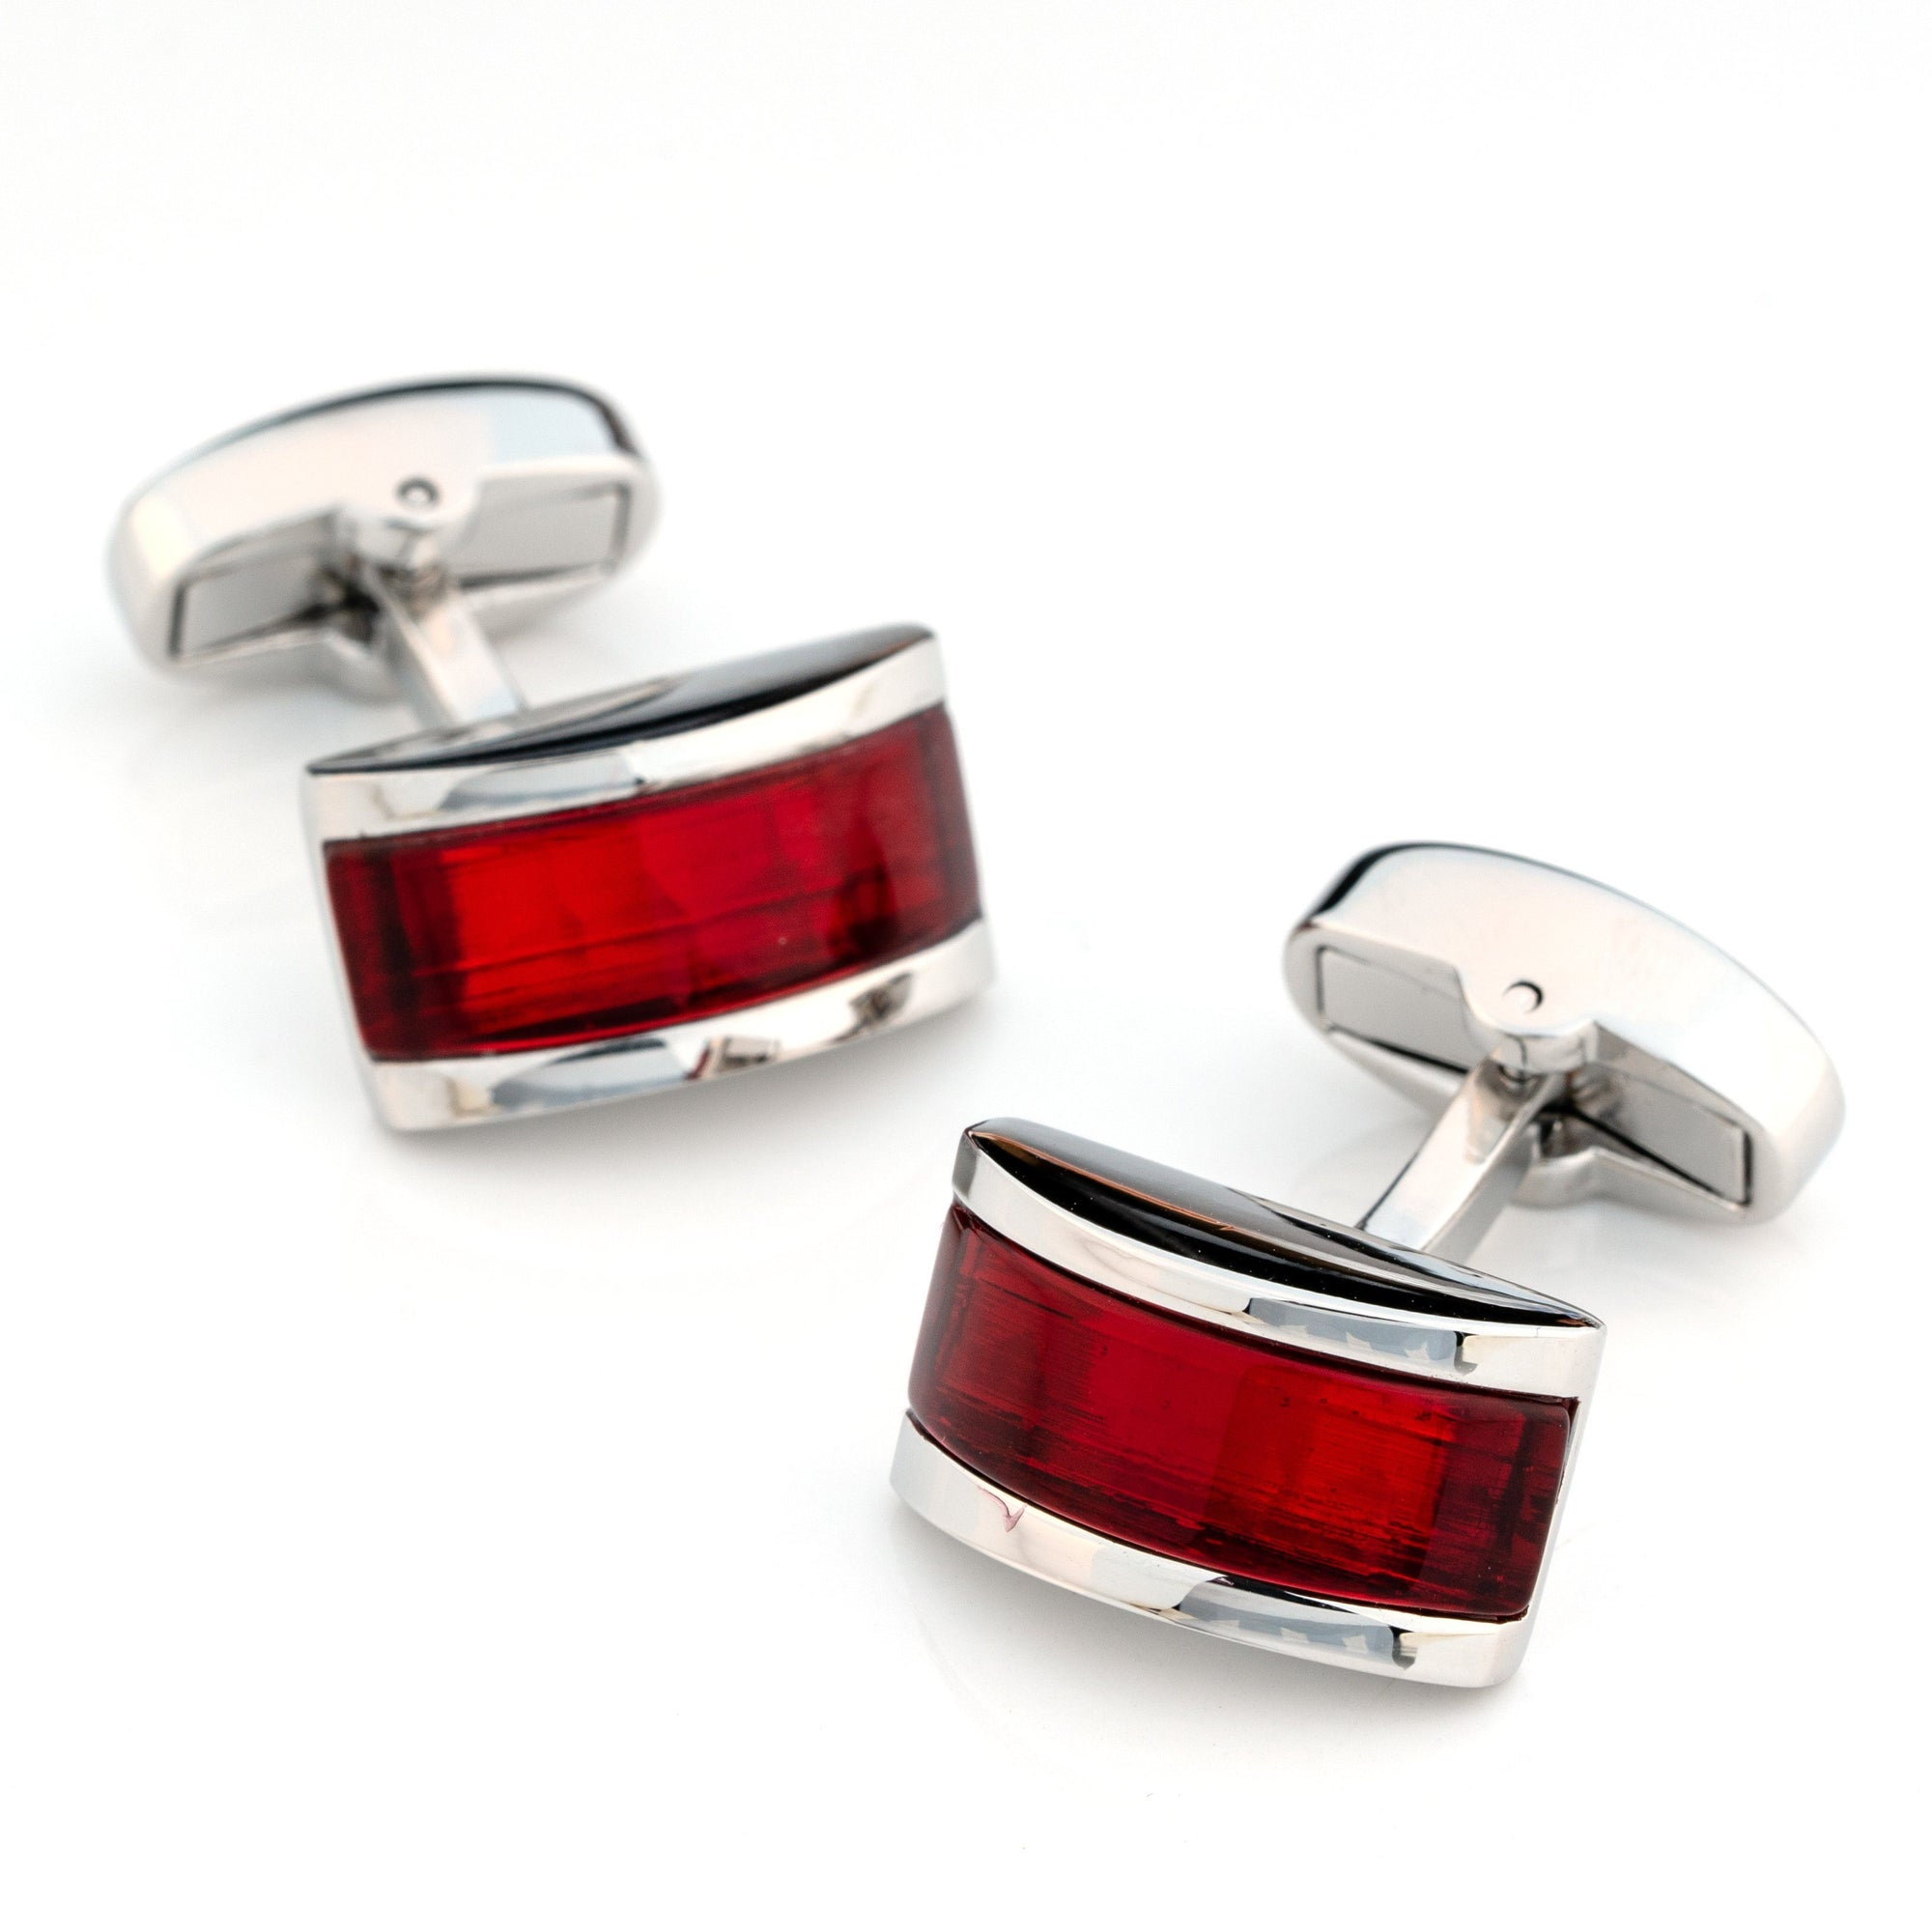 Ruby Red Cateye Cufflinks Classic & Modern Cufflinks Clinks Australia